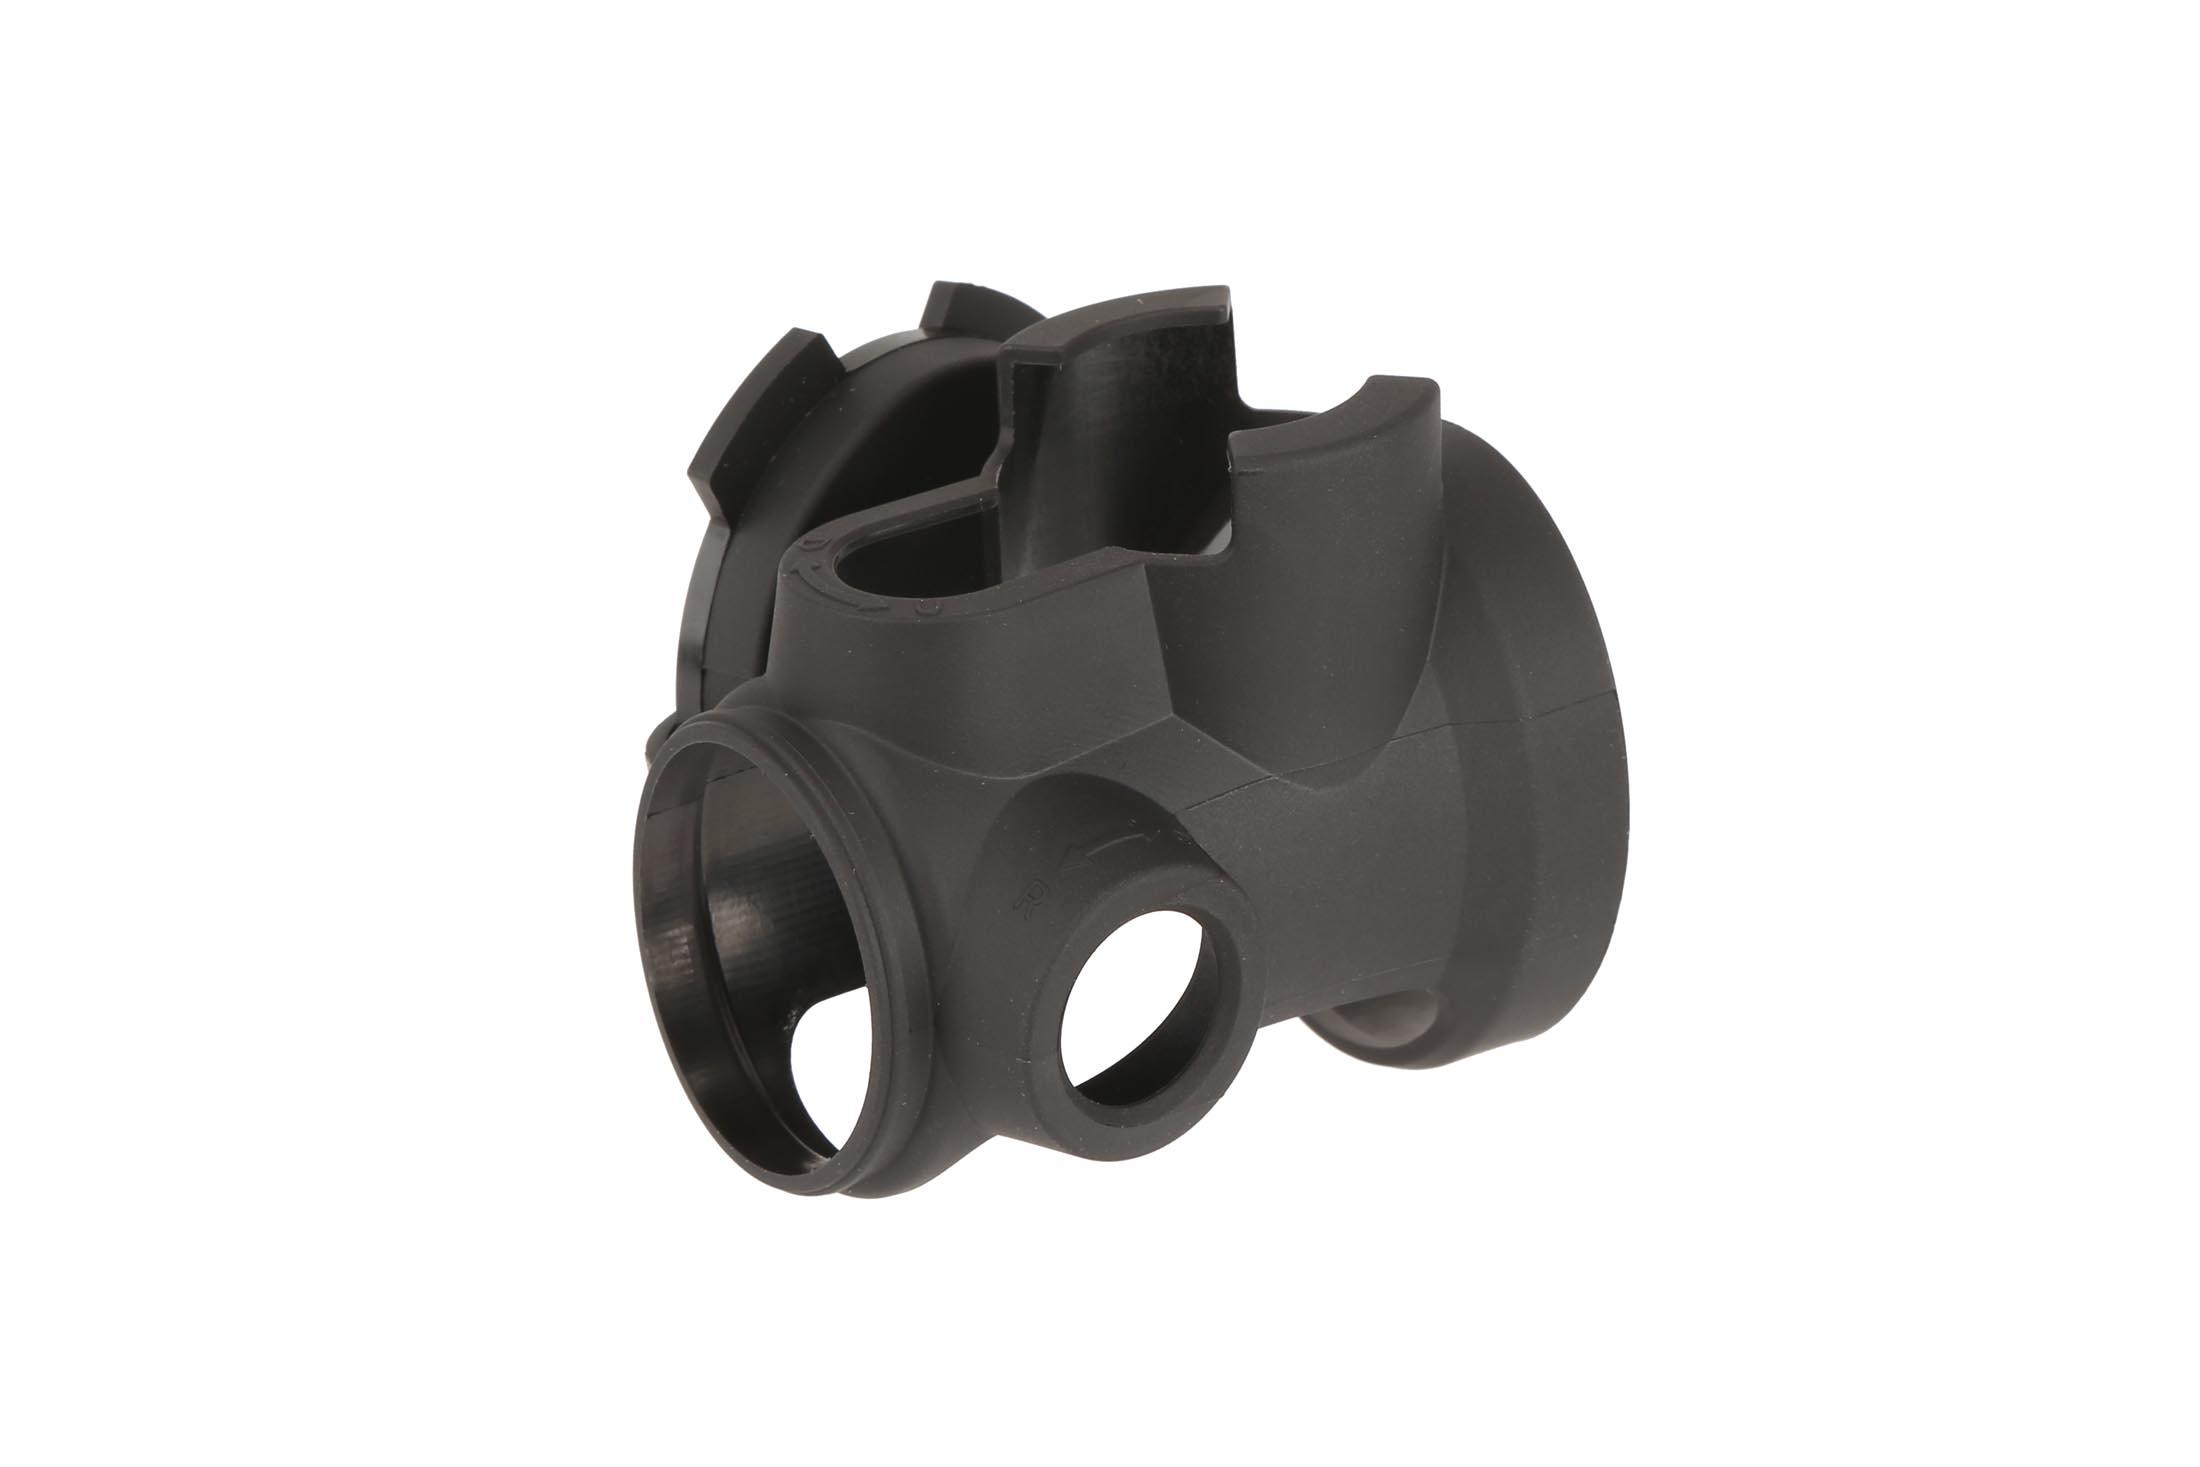 The Tango Down iO cover for Trijicon MRO optics protects against adverse weather